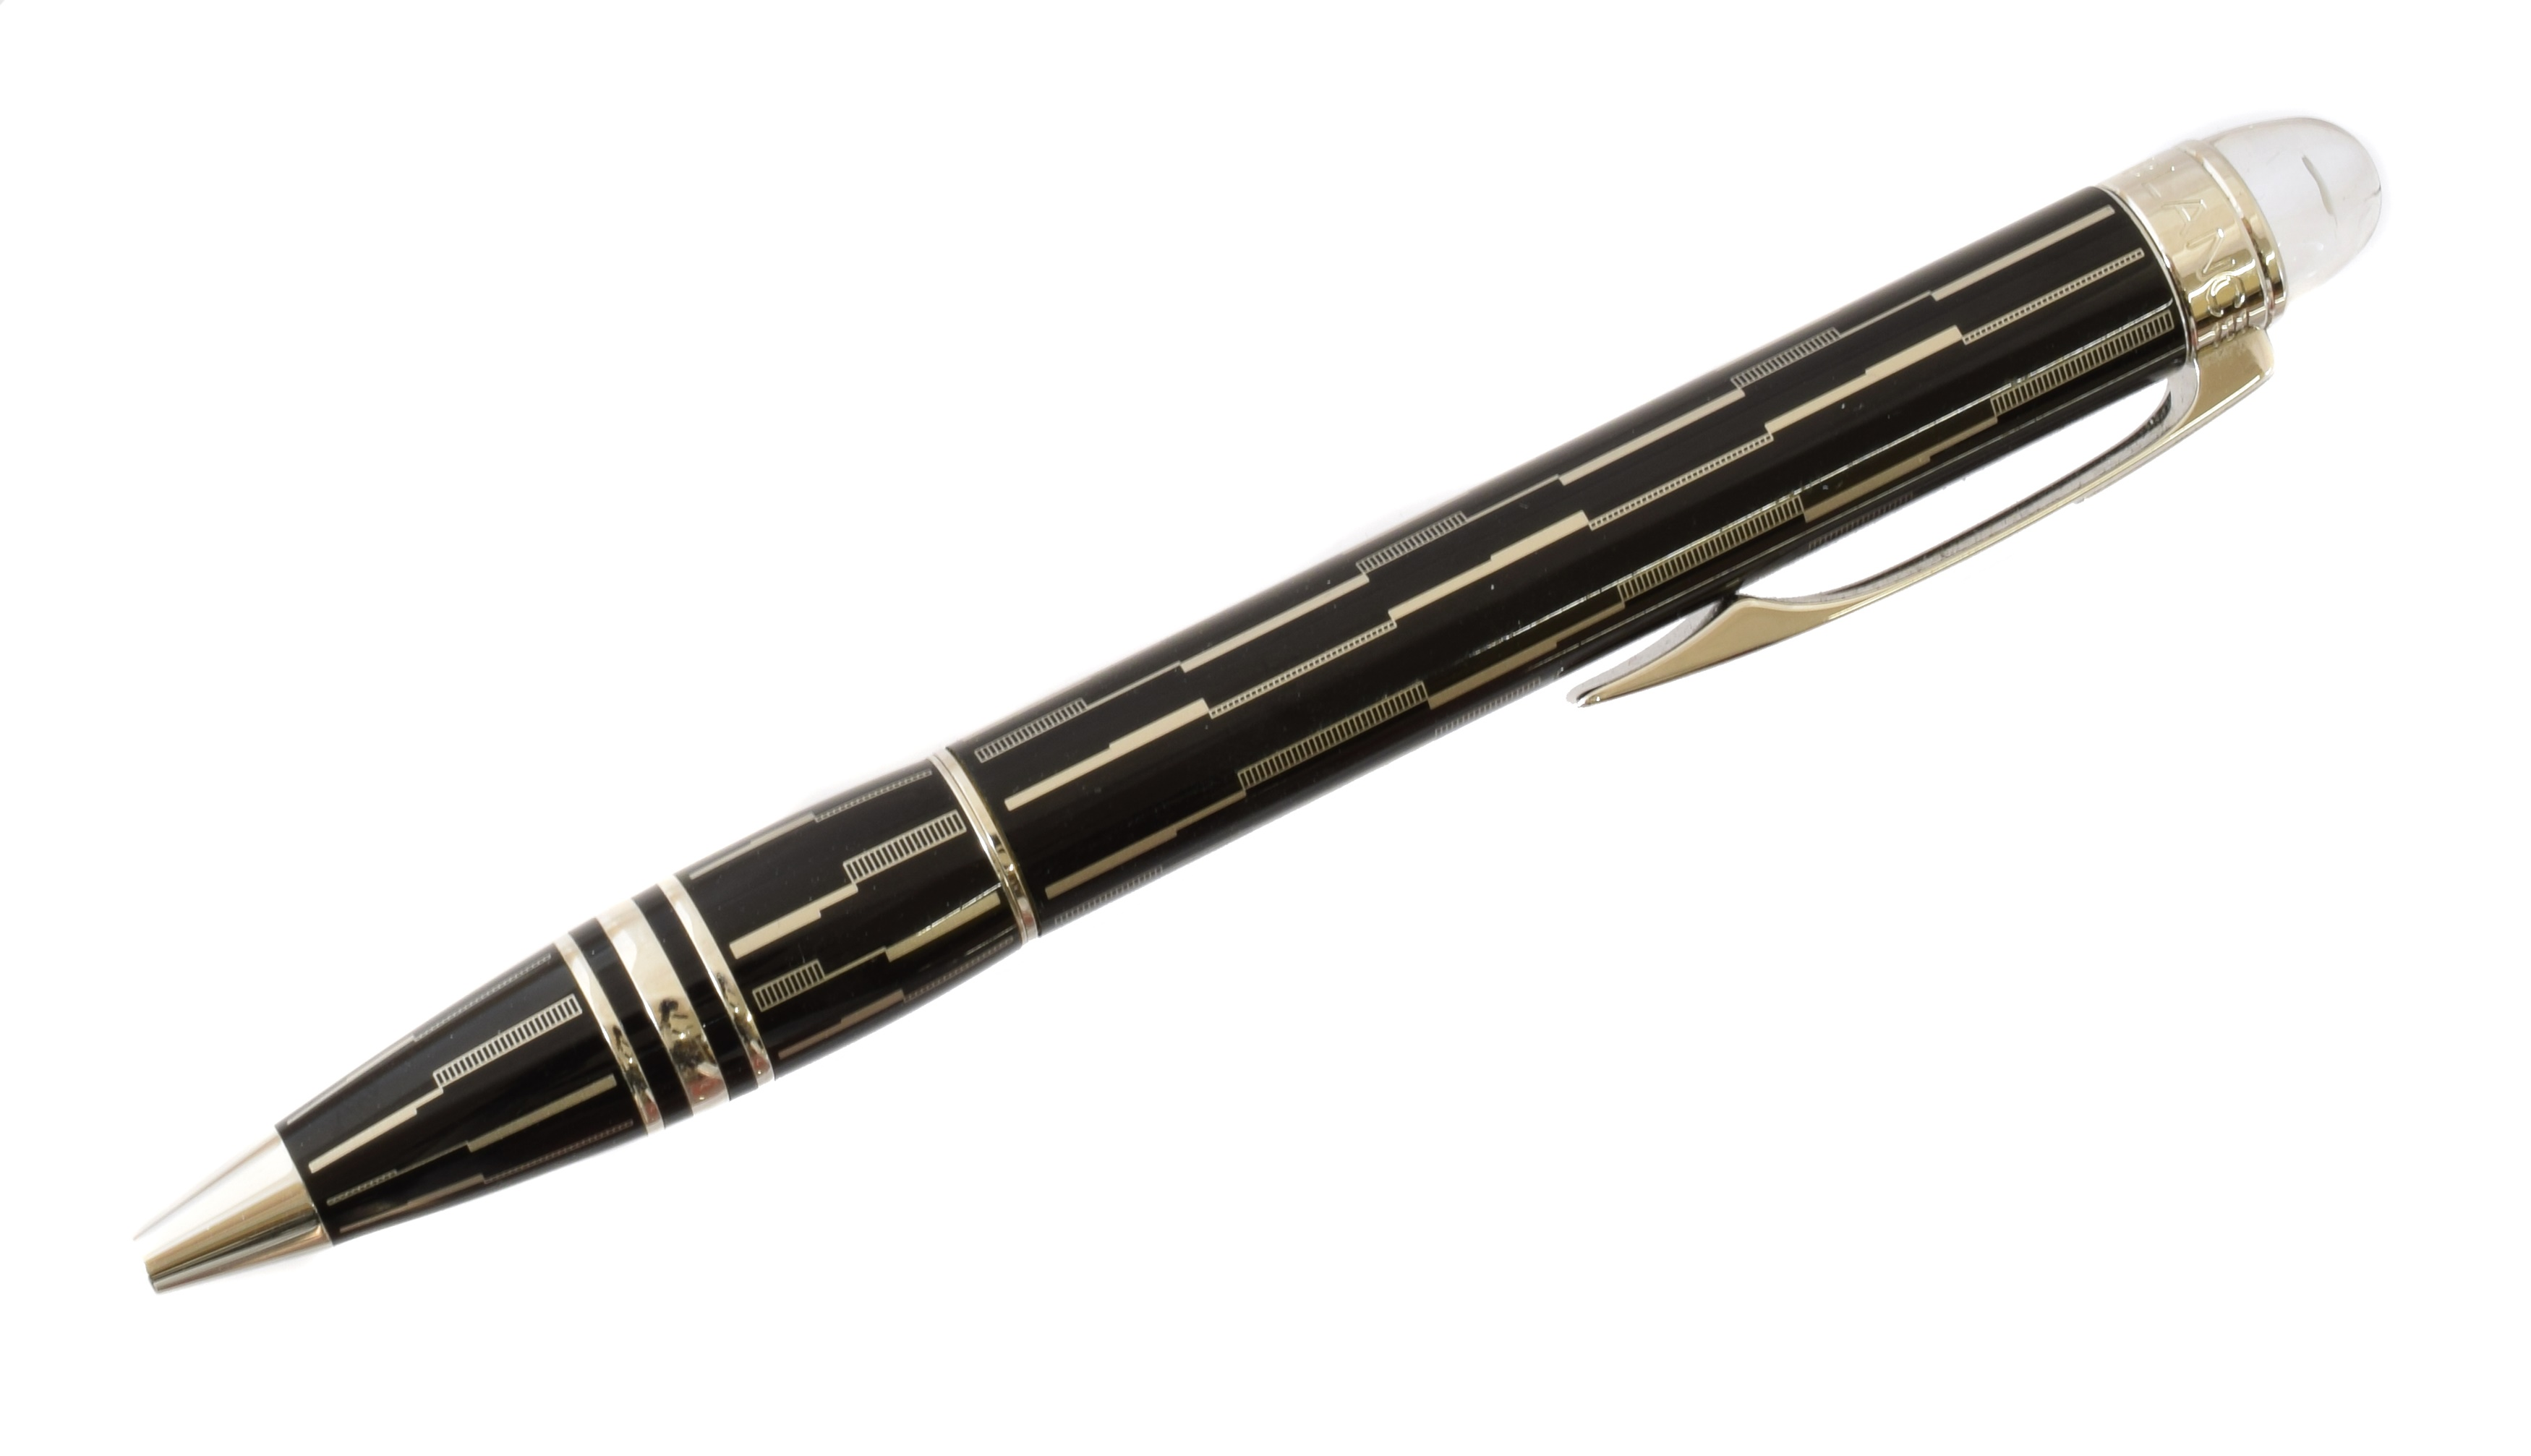 A Montblanc Starwalker Black Mystery Ballpoint Pen, the black resin body heightened with laser-engraved surface, the cap with clear resin finial enclosing the Montblanc logo, serial CT1653565, 13.5cm.